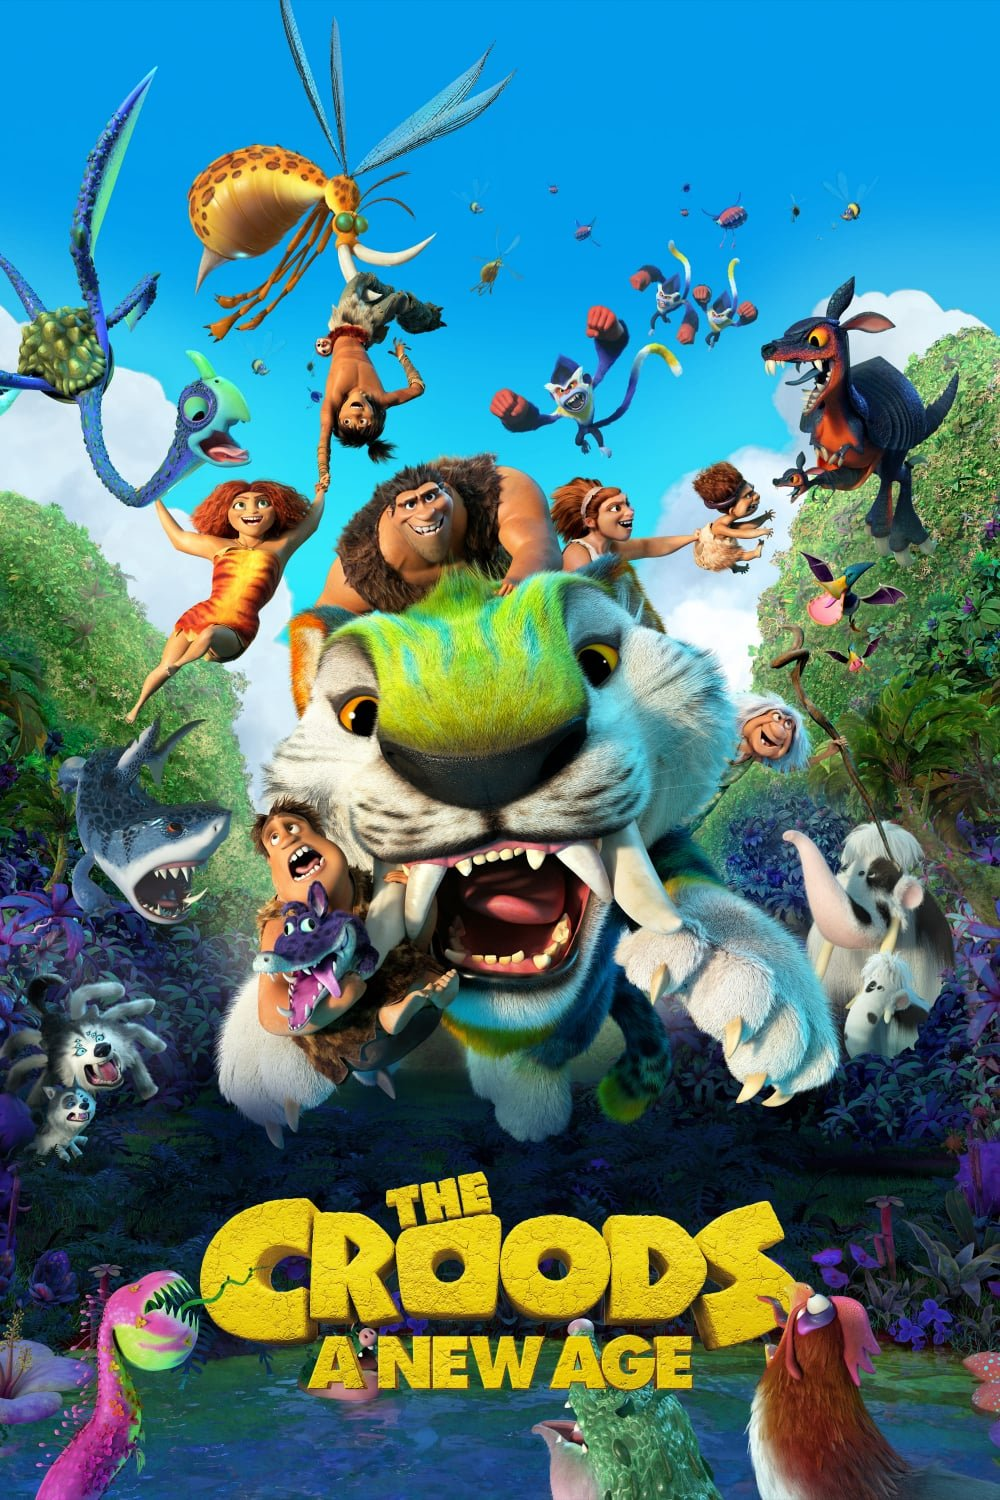 The Croods A New Age 2020 English 720p HDCAM 850MB Download